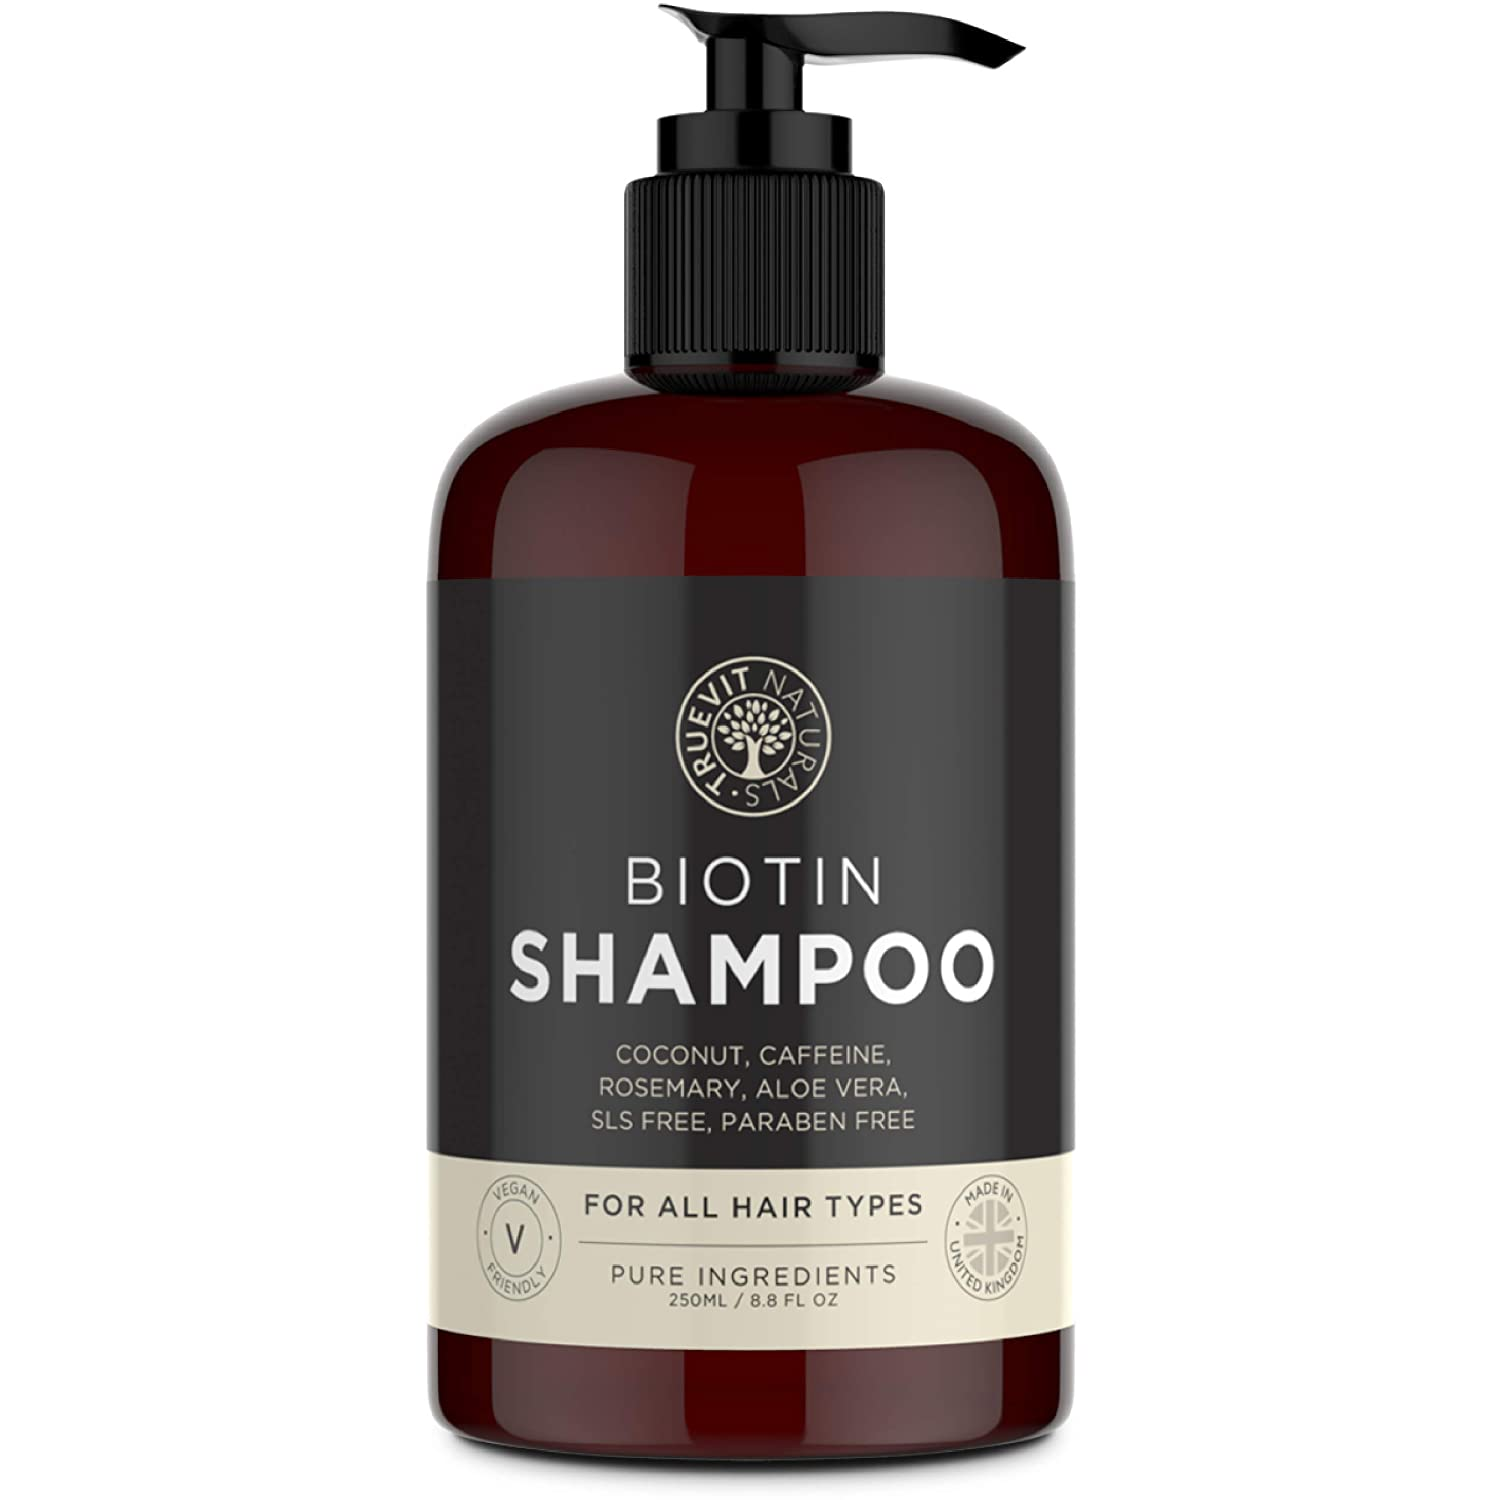 Biotin Shampoo with added Coconut Oil, Aloe Vera, Rosemary Oil Extract and Caffeine for Hair Growth - 250ML - Vegan Shampoo - Paraben Free & SLS Free TRUEVIT NATURALS